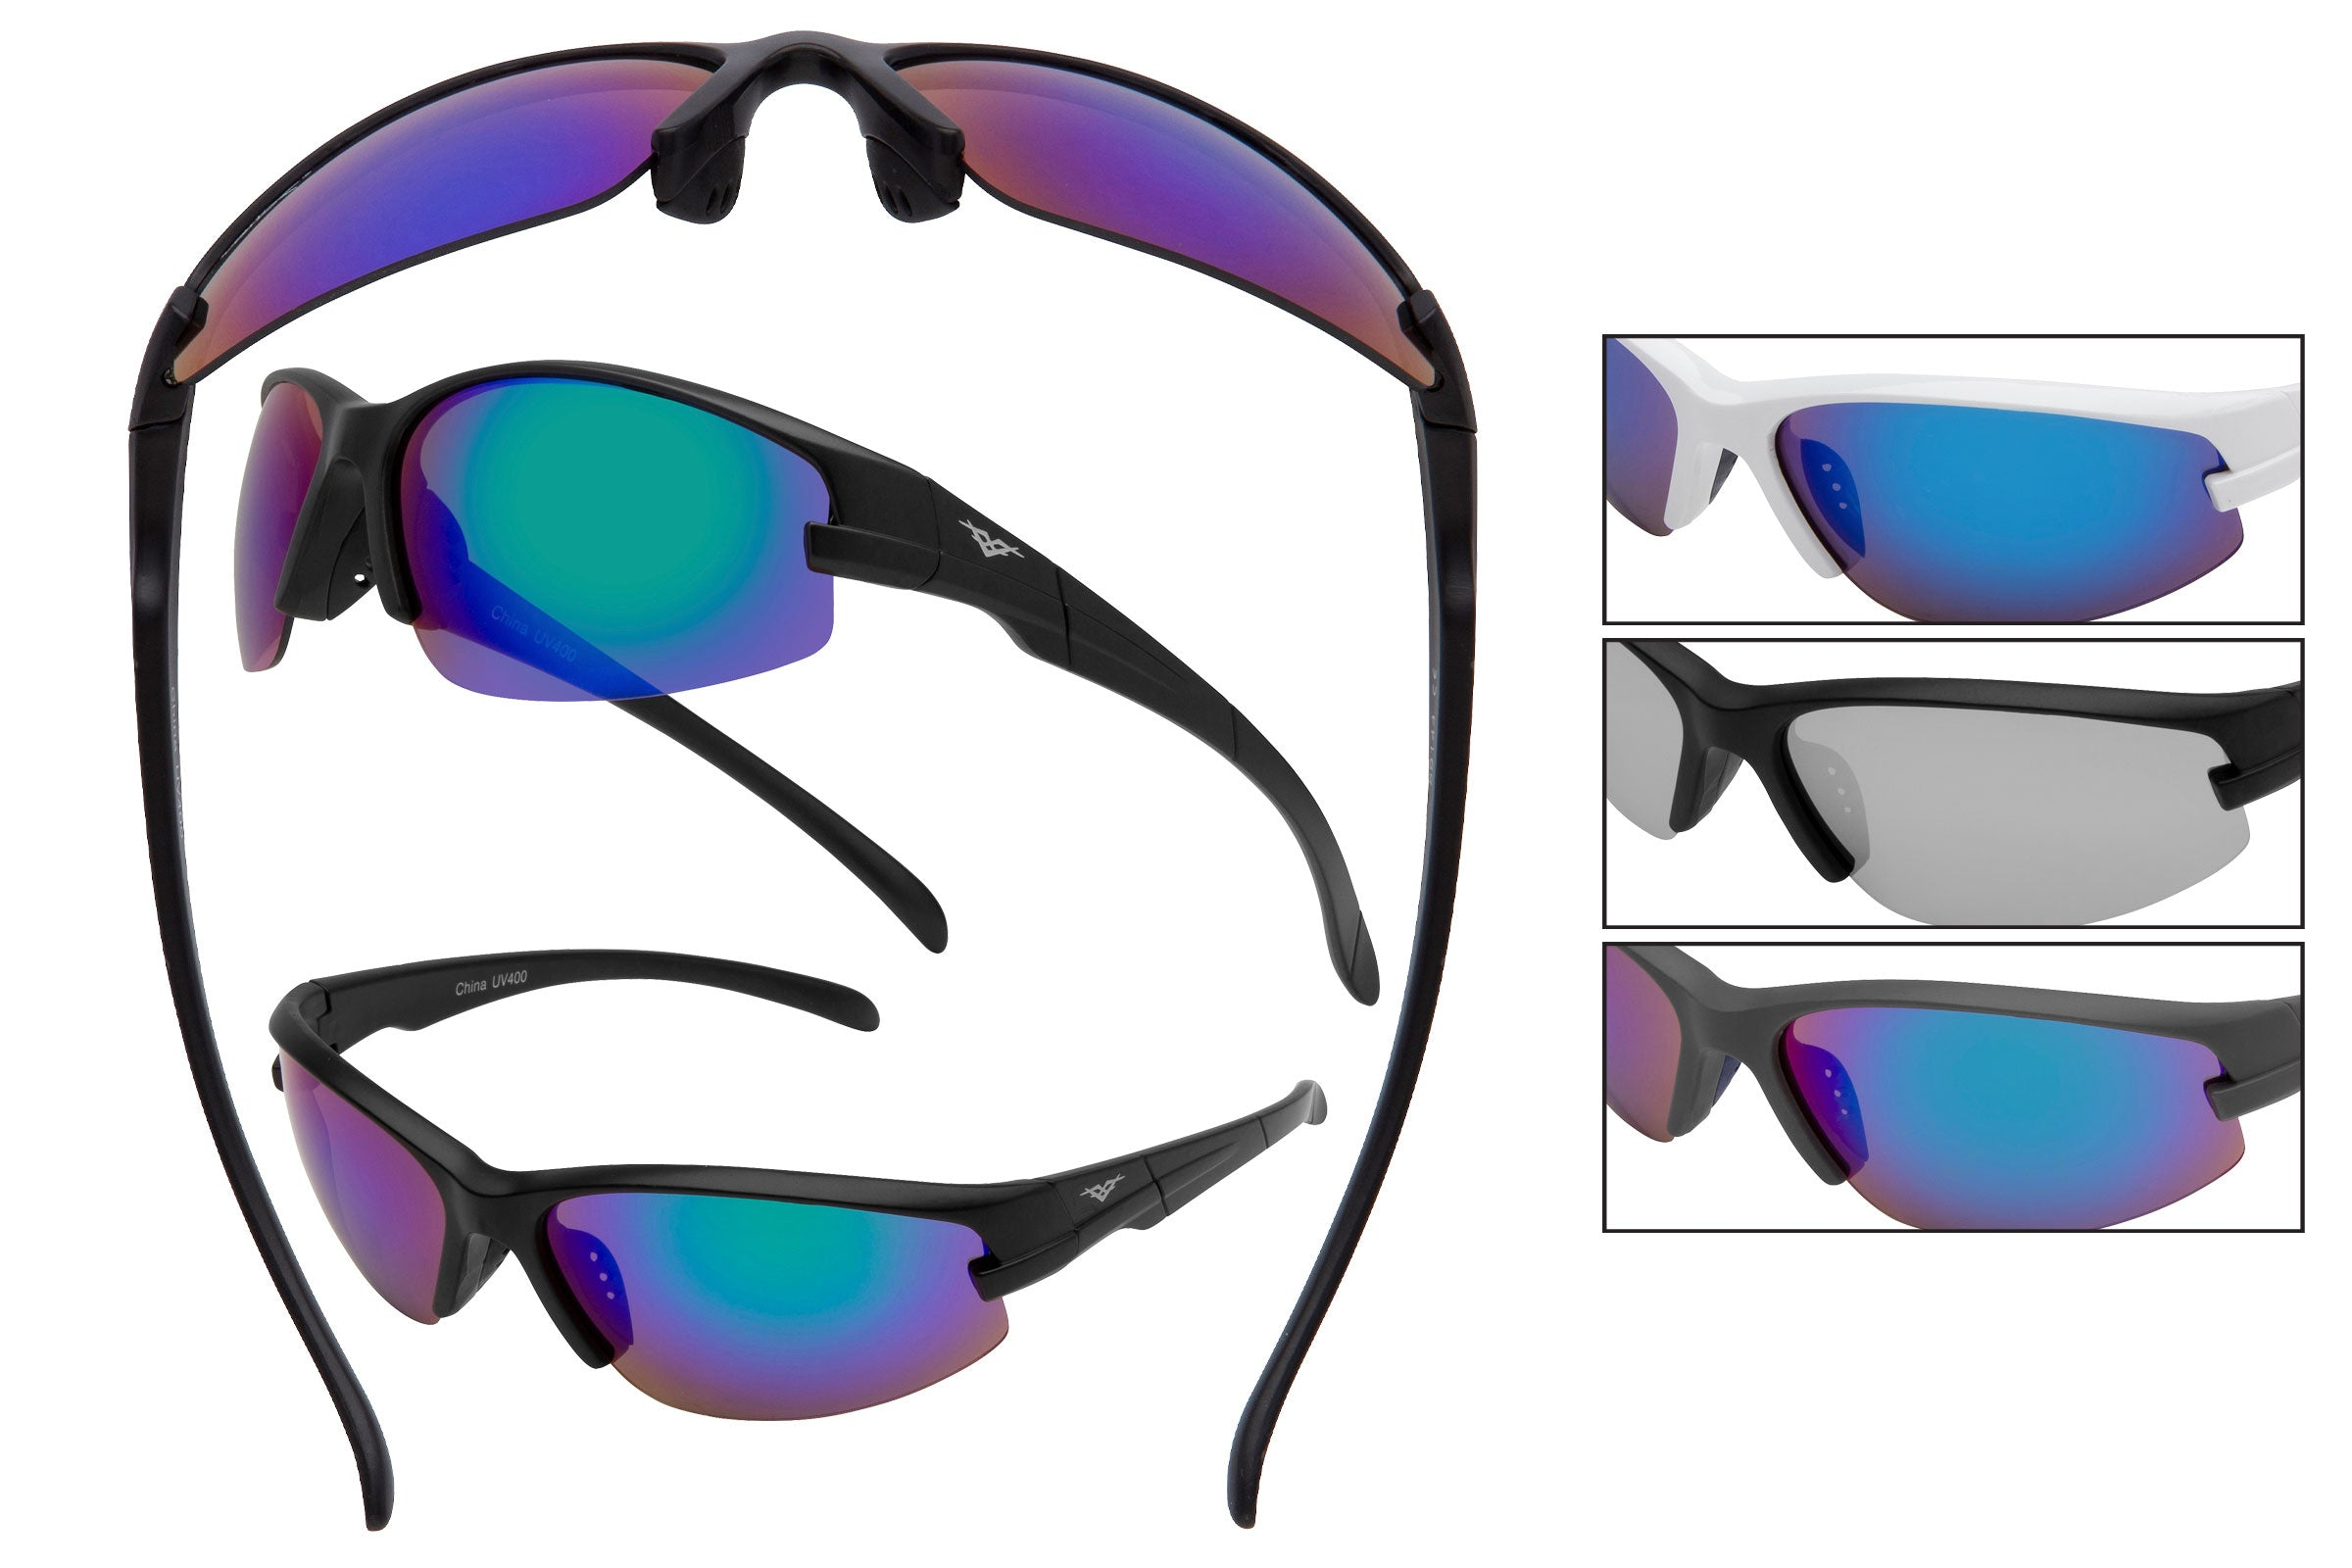 59144 - VertX PC Sport Wrap Sunglasses